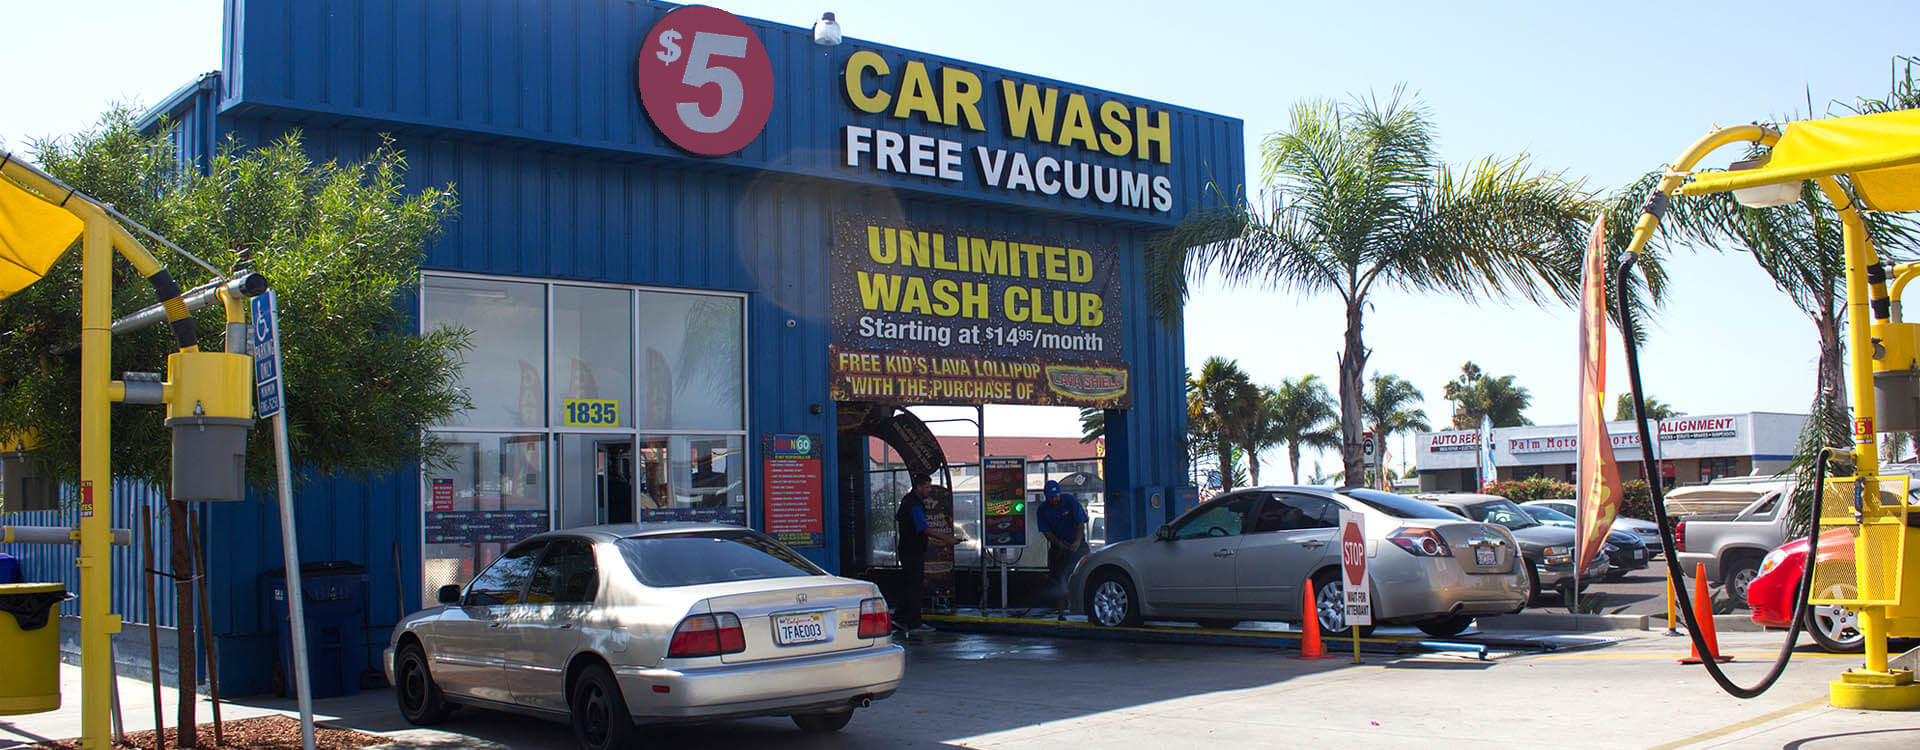 Palm Avenue - Imperial Beach Car Wash 1835 Palm Ave San Diego, CA 92154 HOURS: 7AM - 9PM Everyday